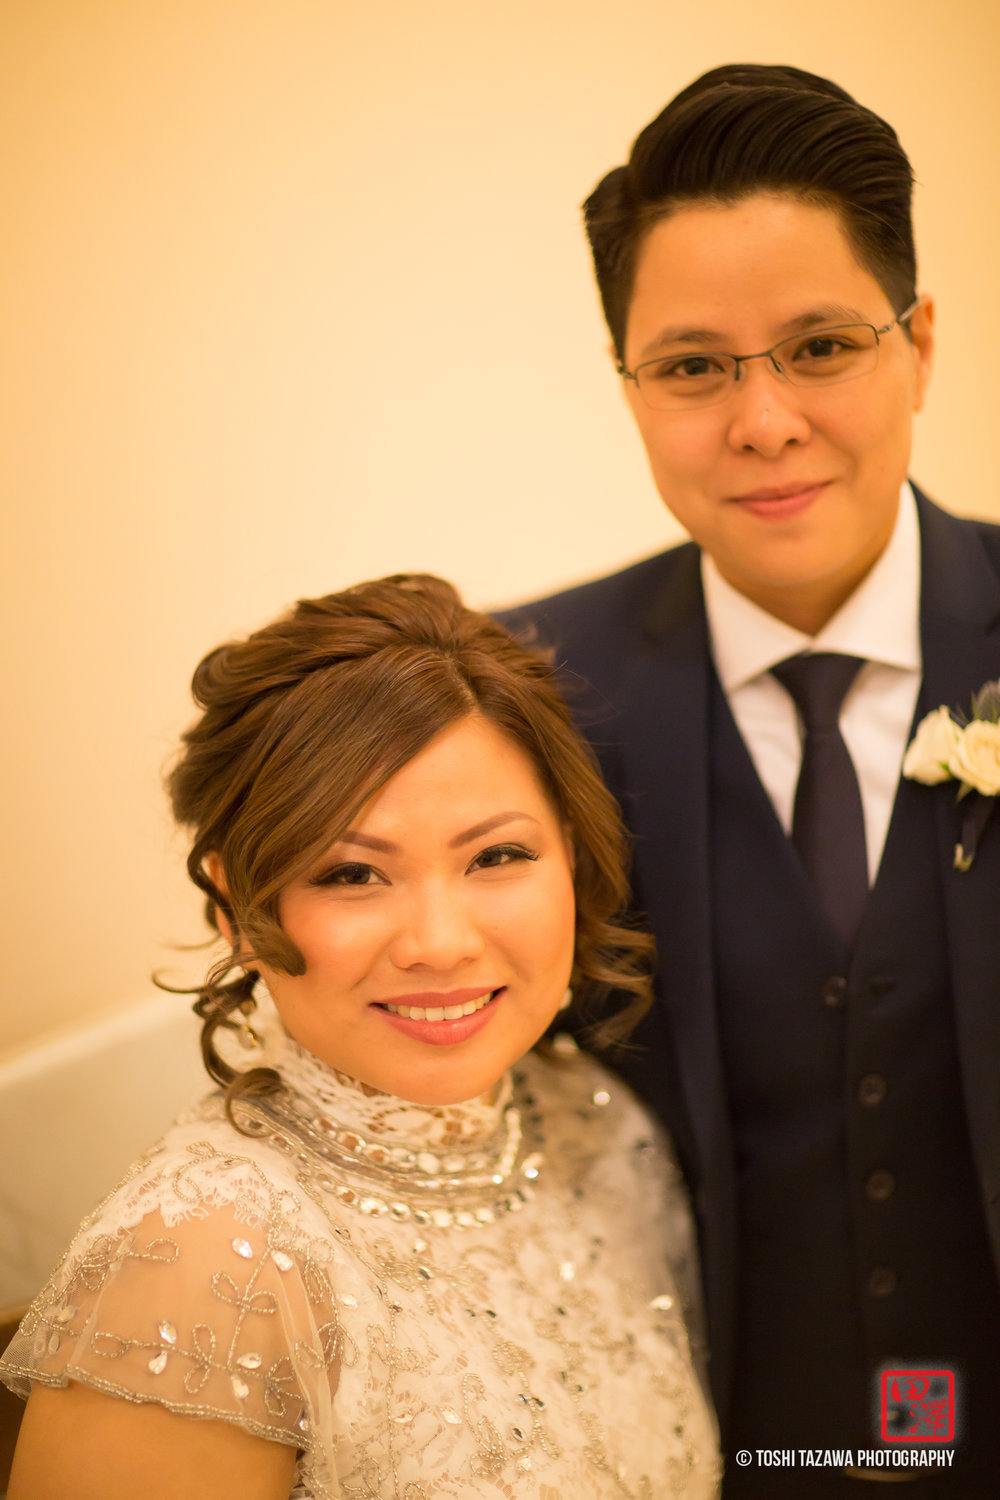 Toshi Tazawa Photography - San Francisco Destination Wedding Photographer-151.jpg